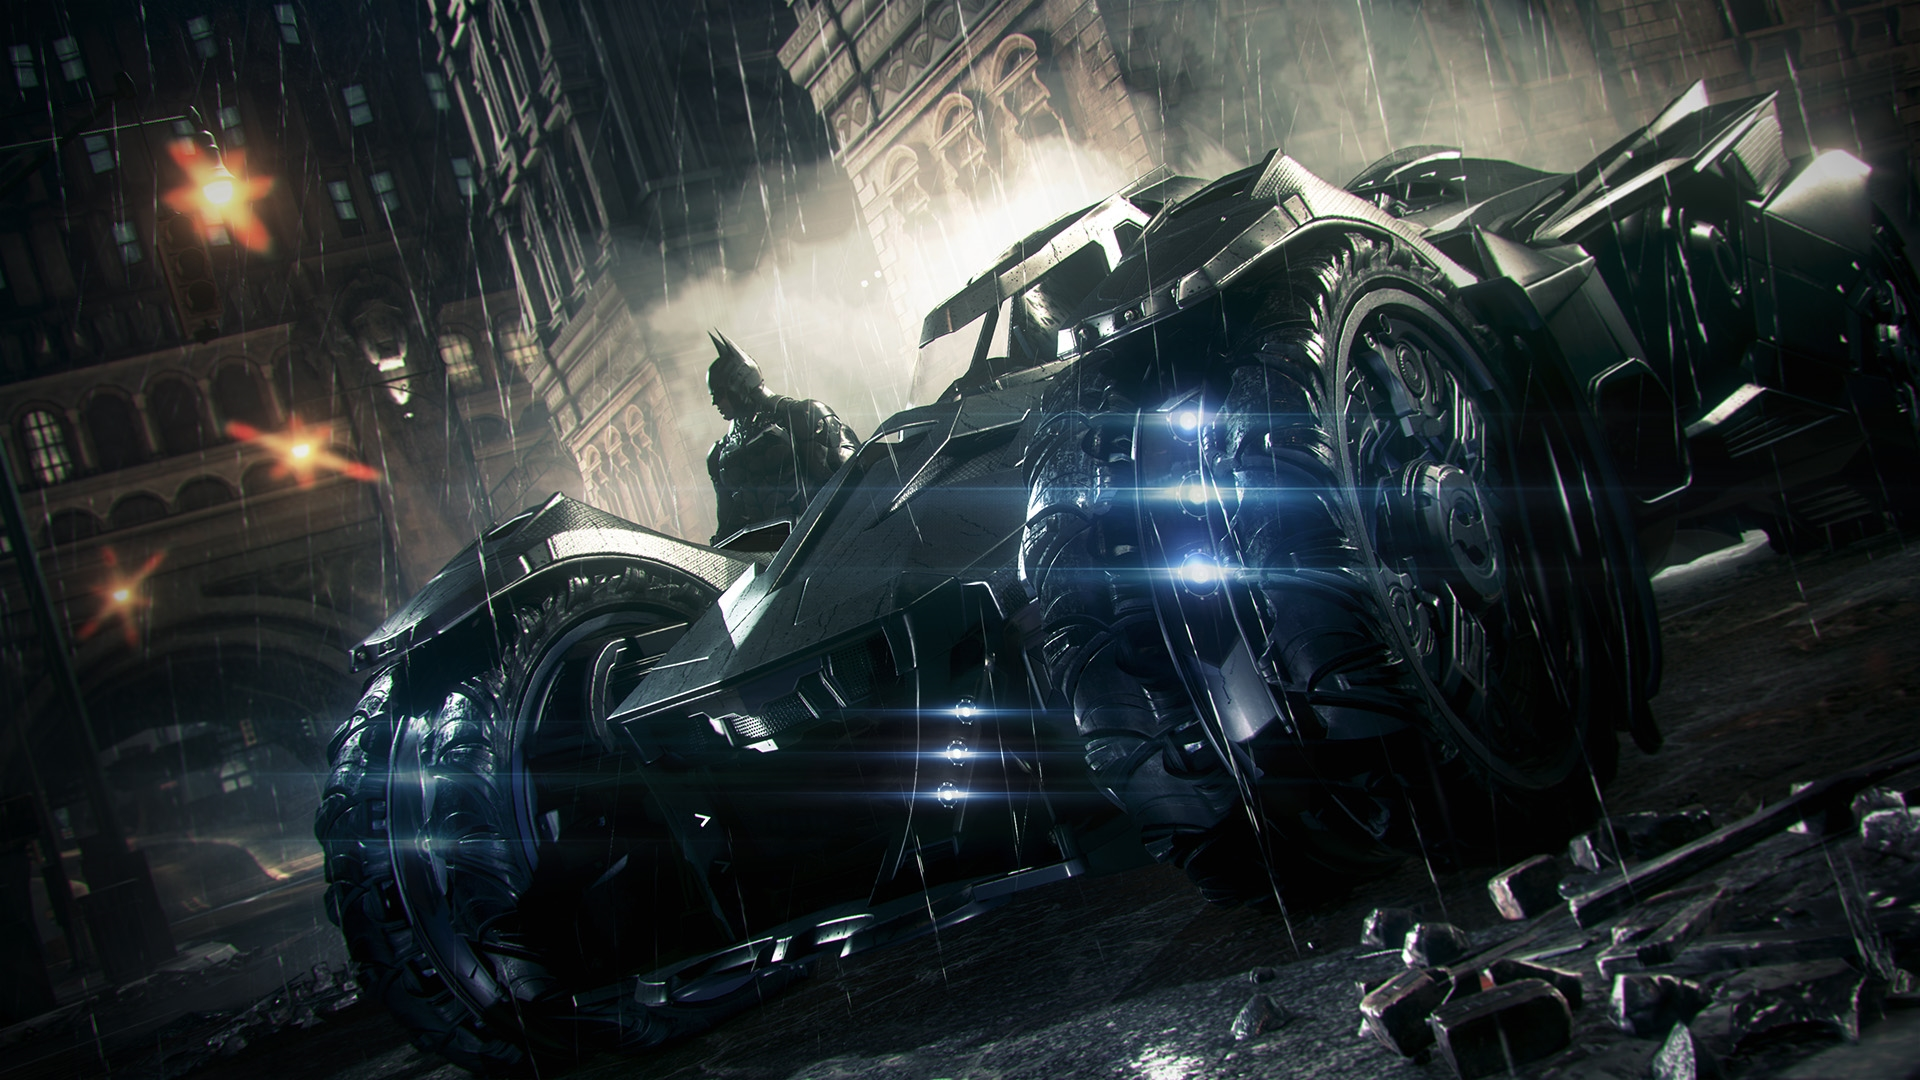 batman car hd wallpaper free download